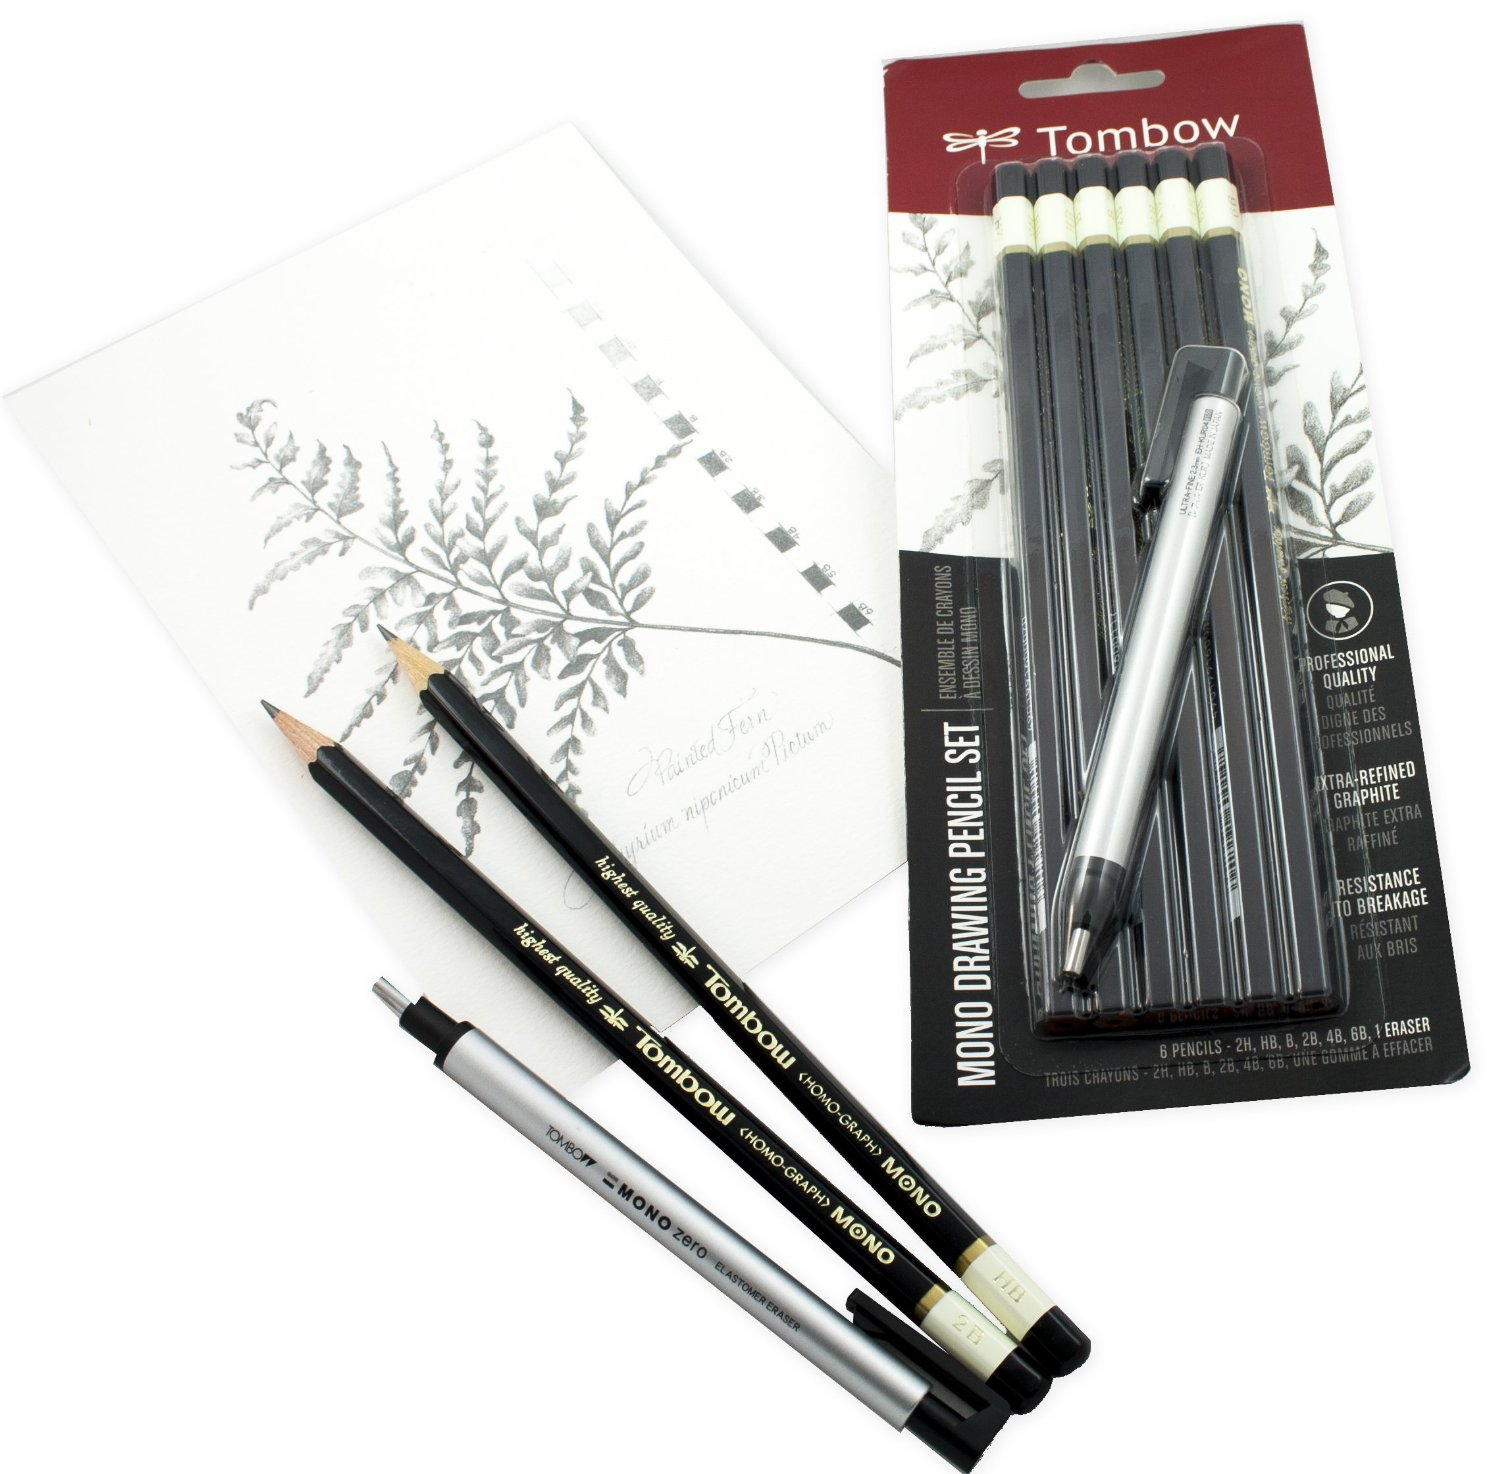 Not all drawing pencils are created equal the art of mindy lighthipe